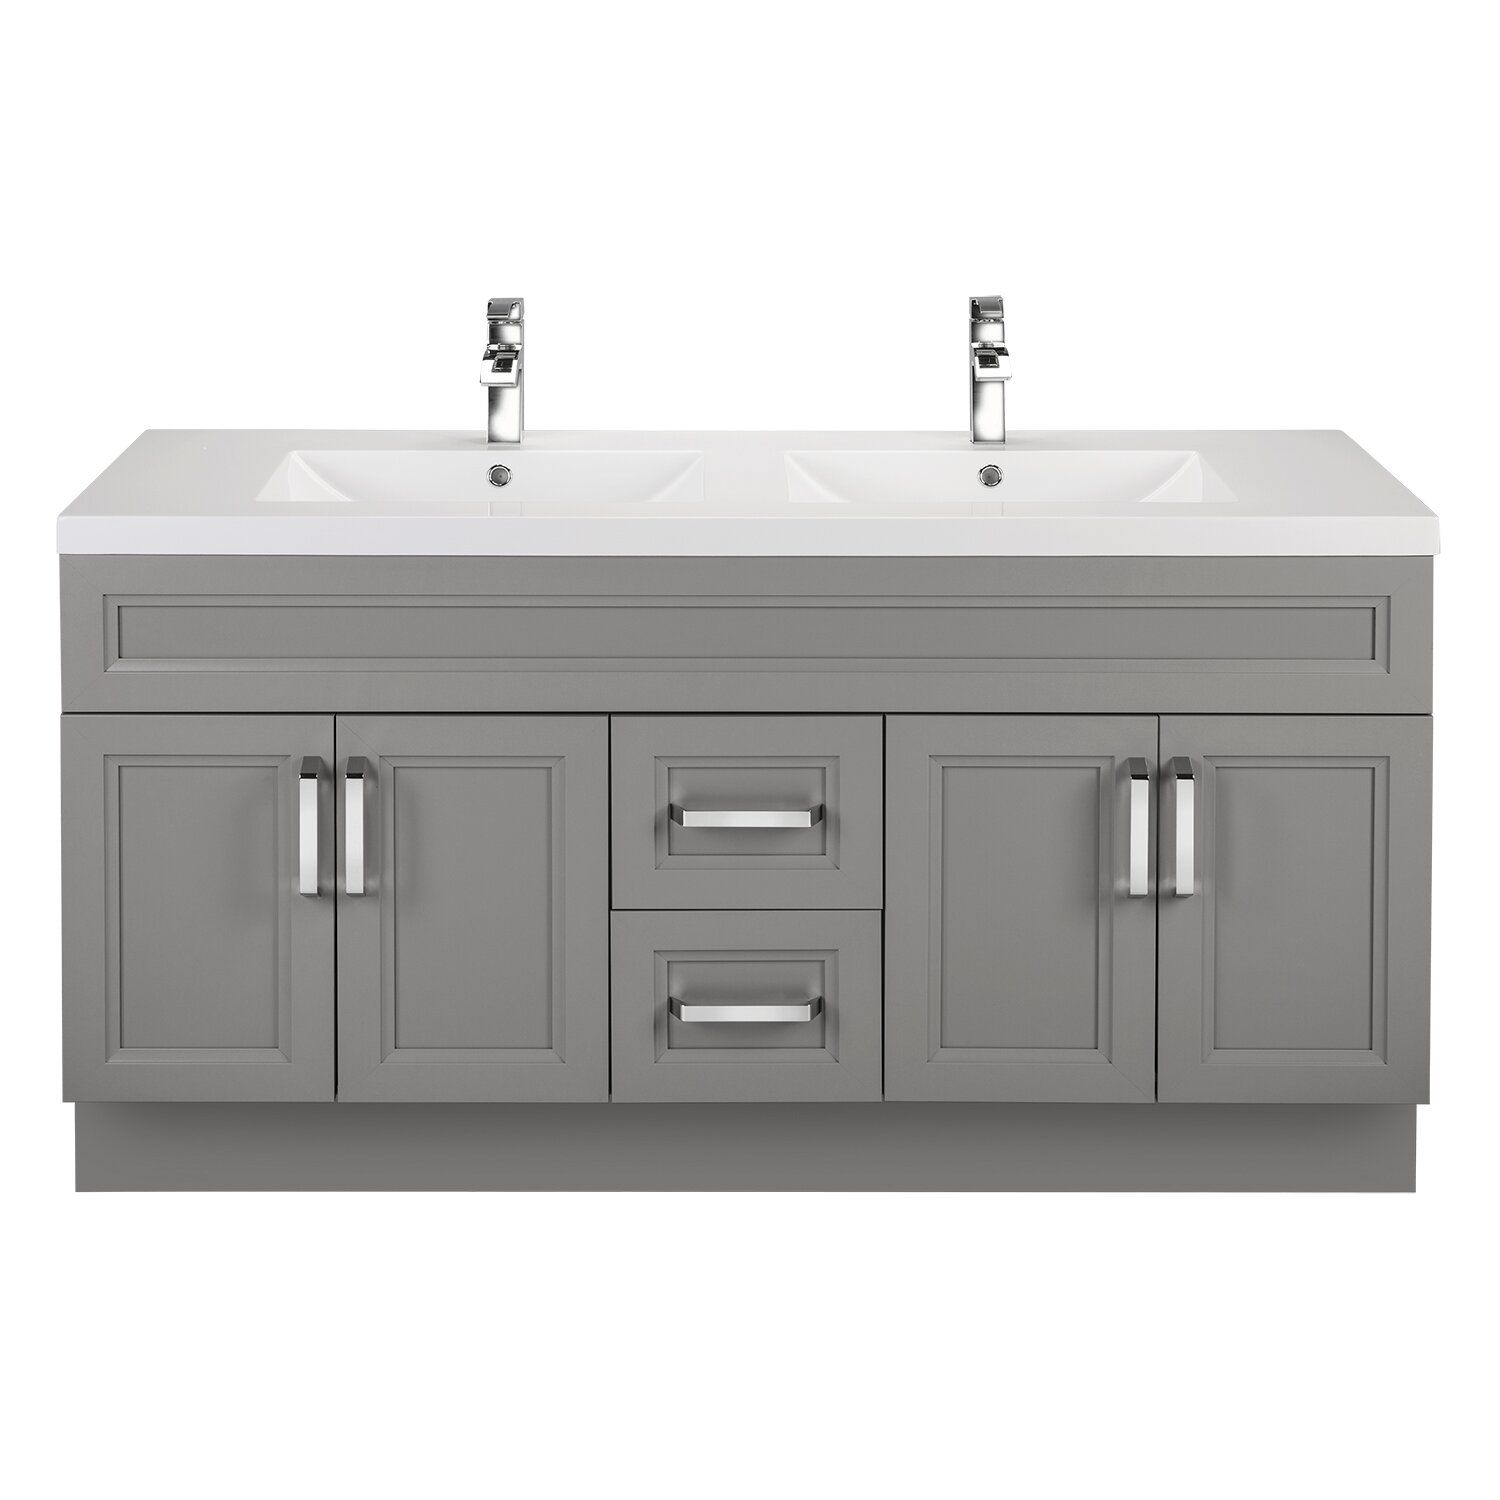 Cutler Kitchen Bath Urban 60 Vanity Double Bowl Wayfair